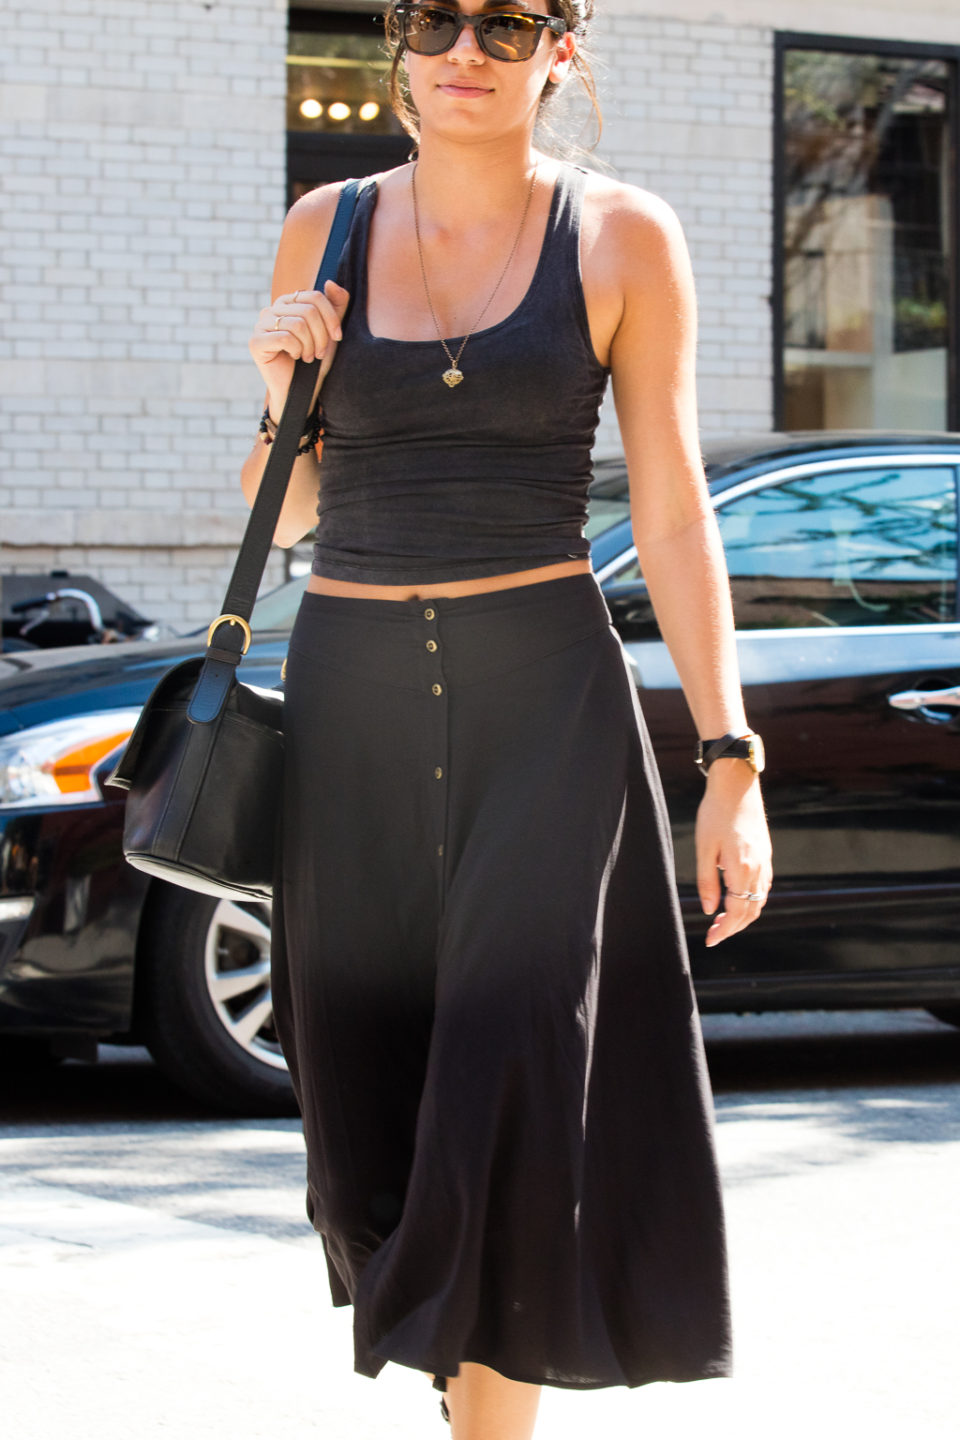 new-york-city-street-style-93